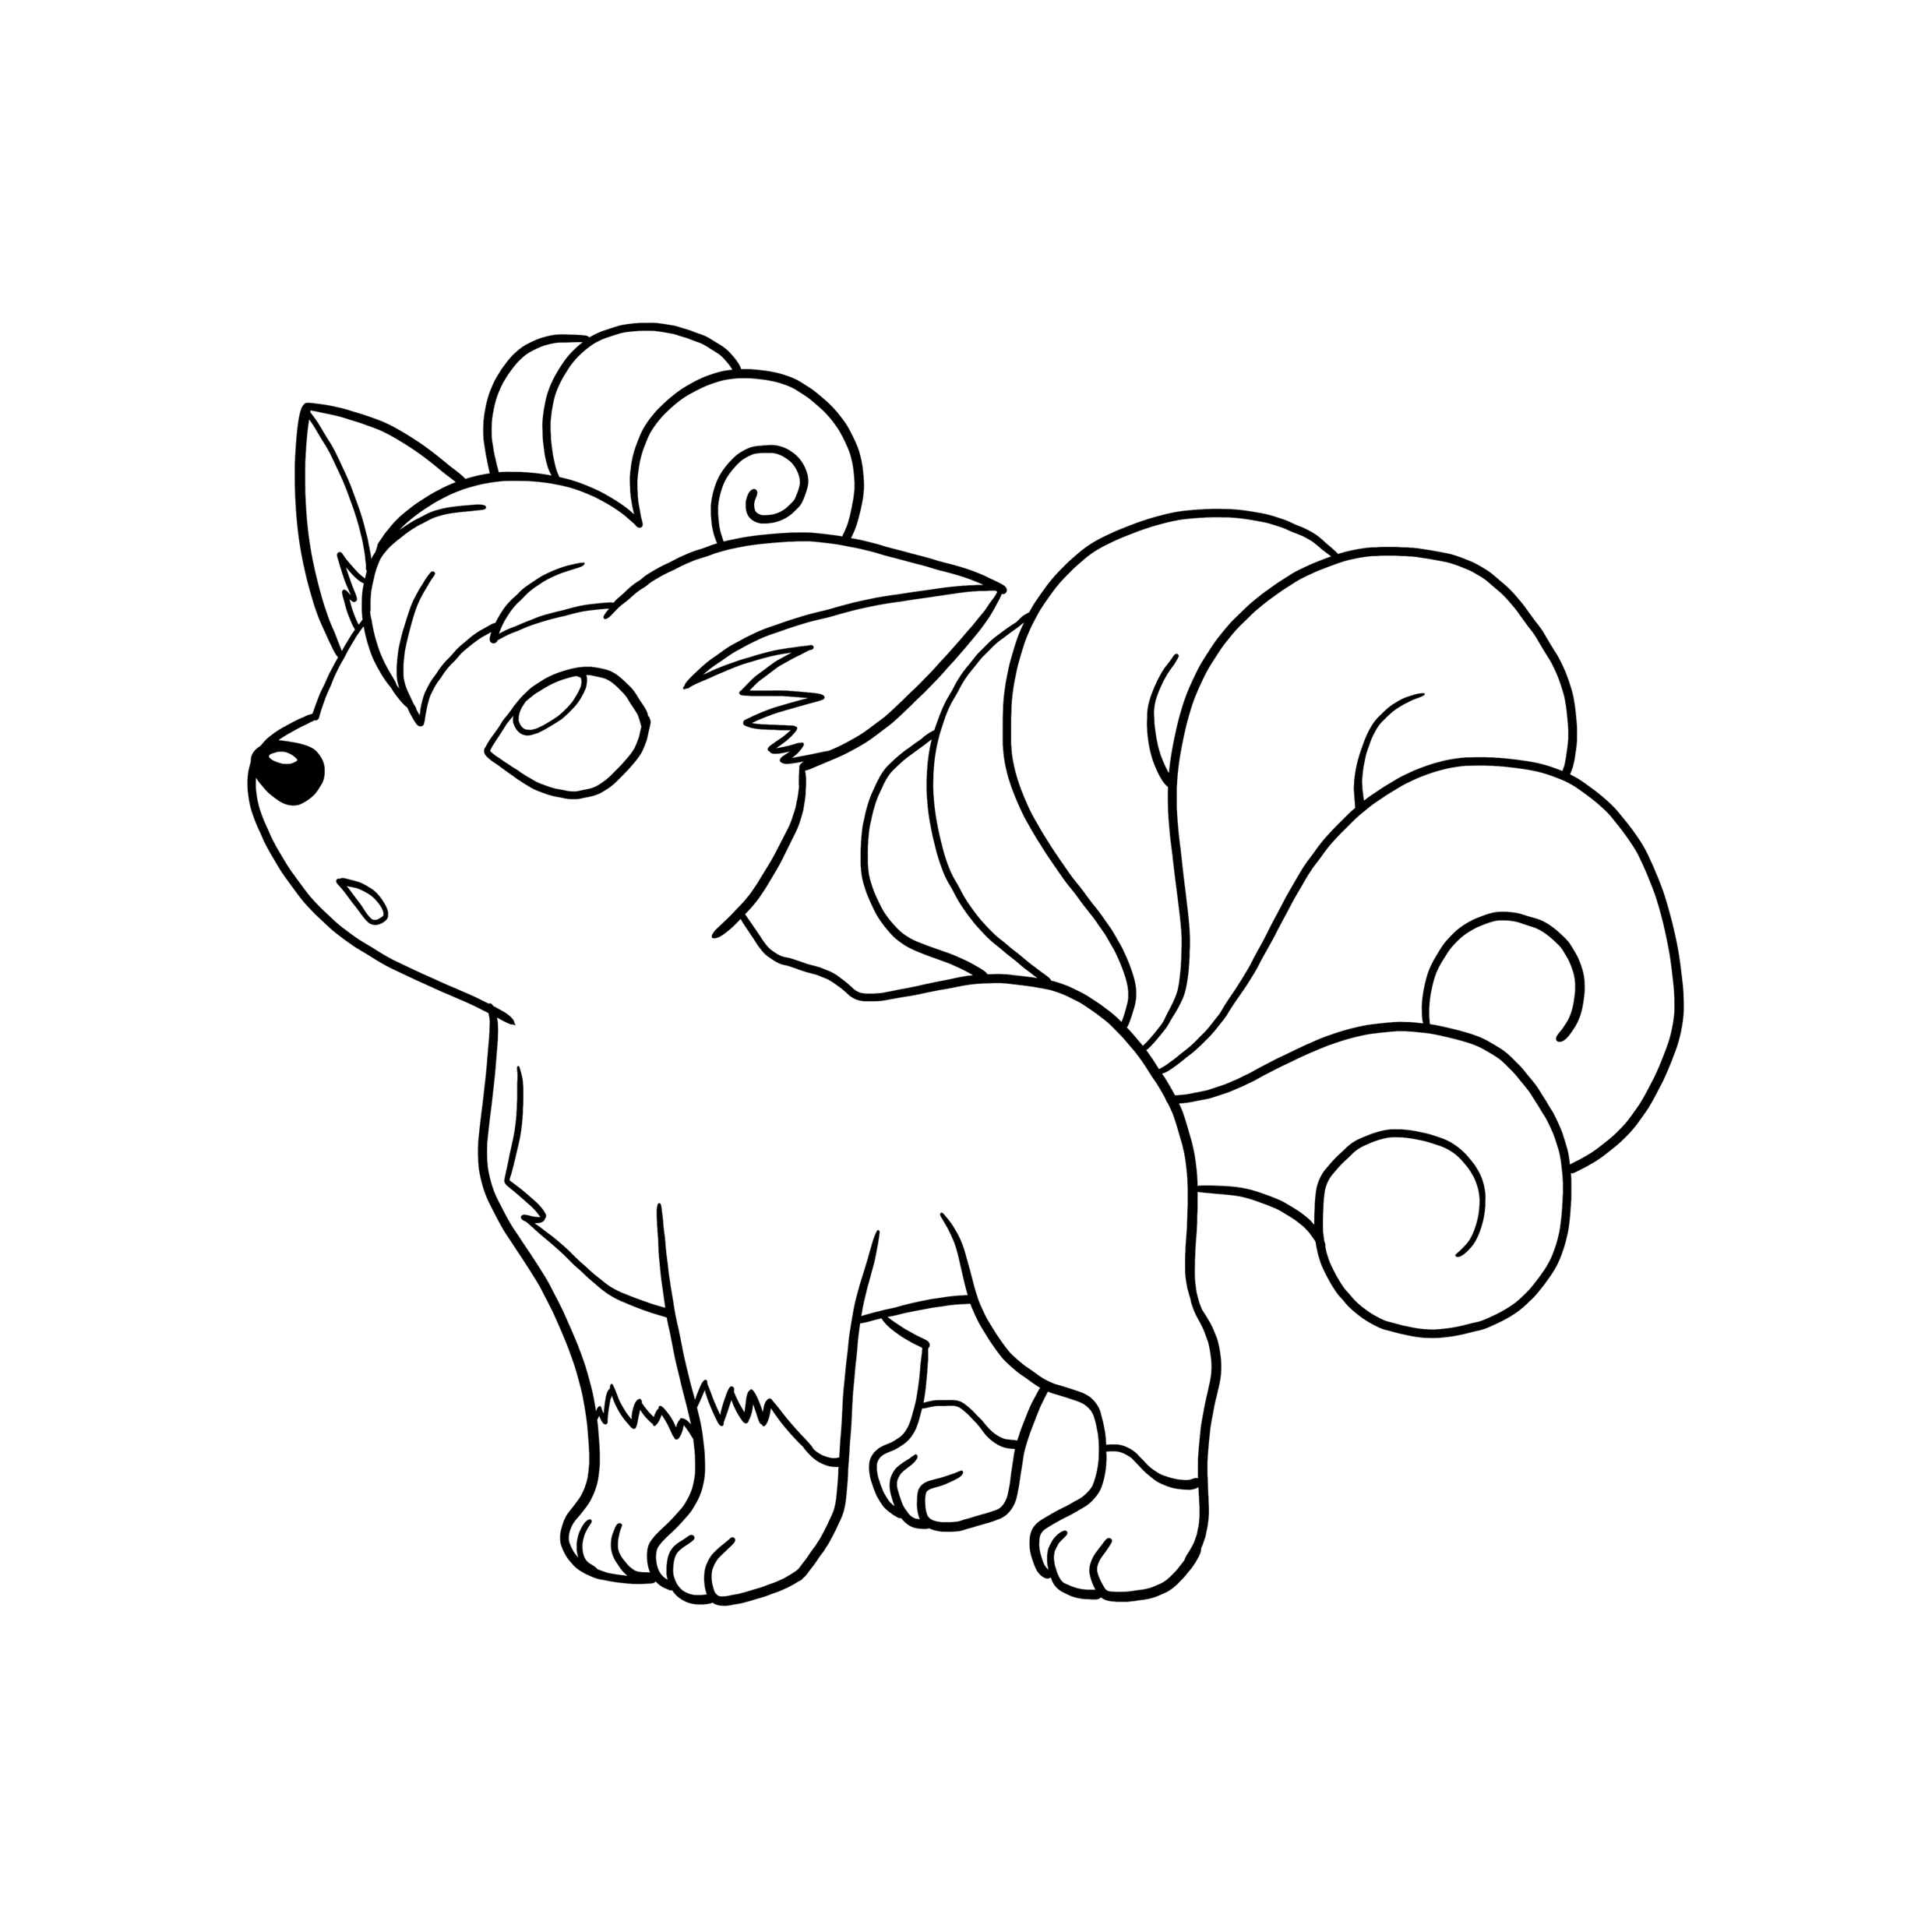 2480x2480 Pokemon Vulpix Coloring Pages To Print Flareon